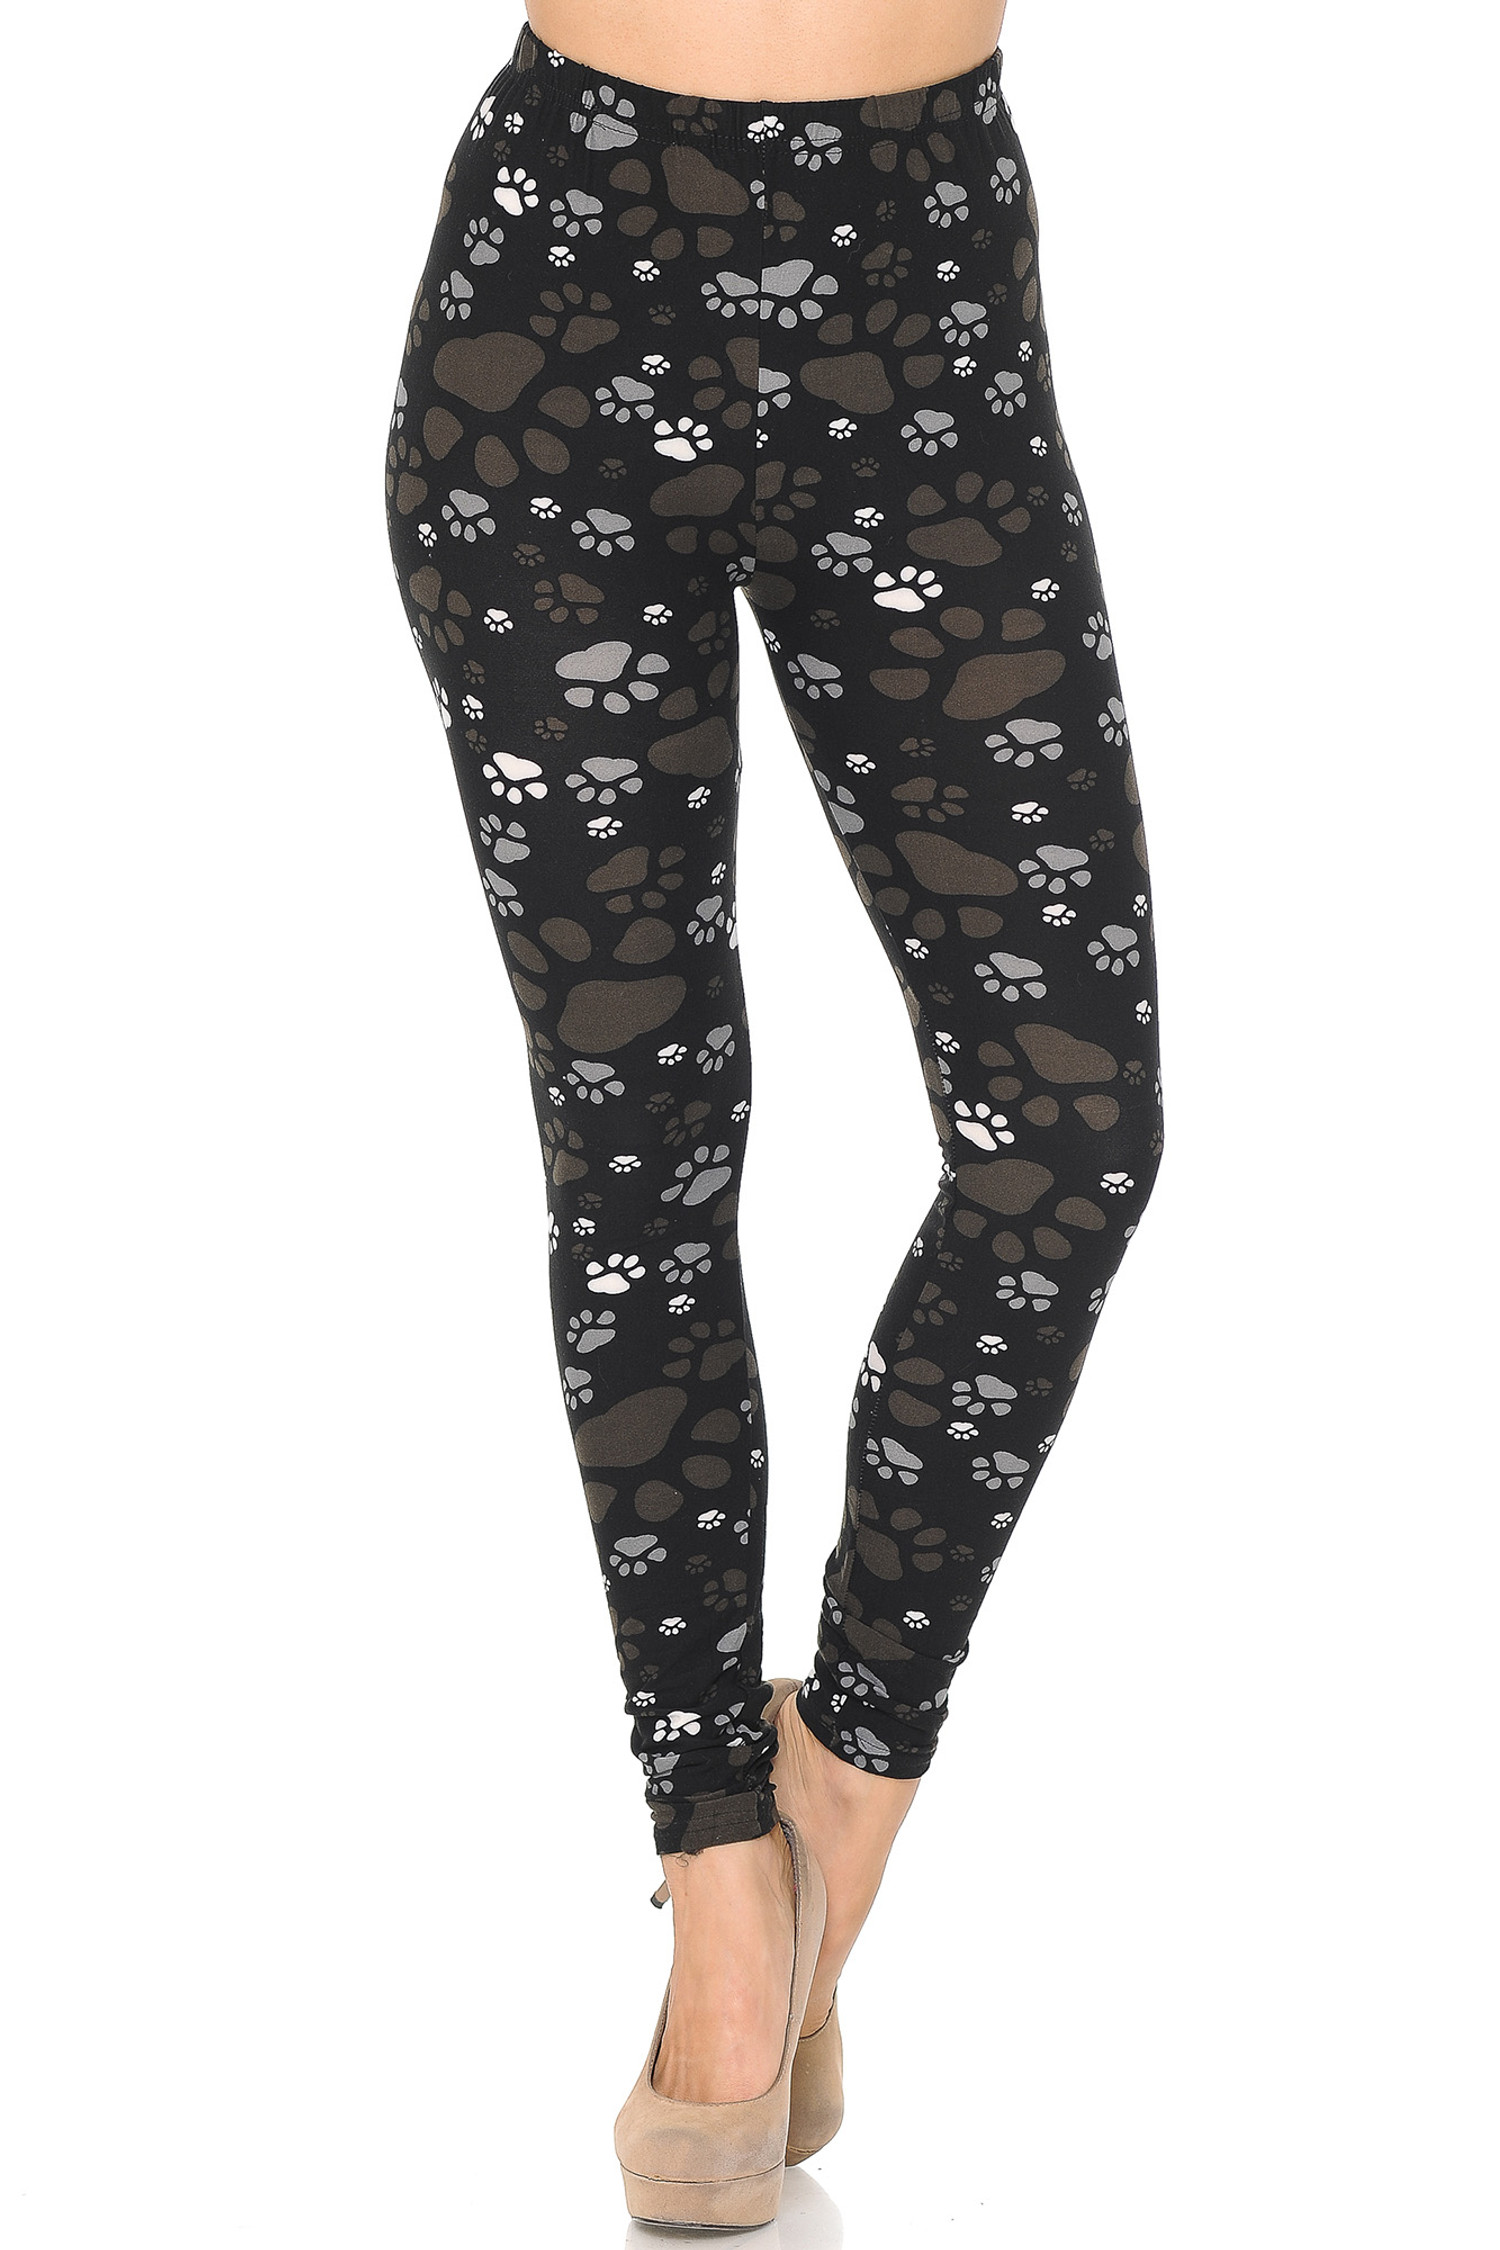 Front of Creamy Soft Muddy Paw Print Leggings  - USA Fashion™